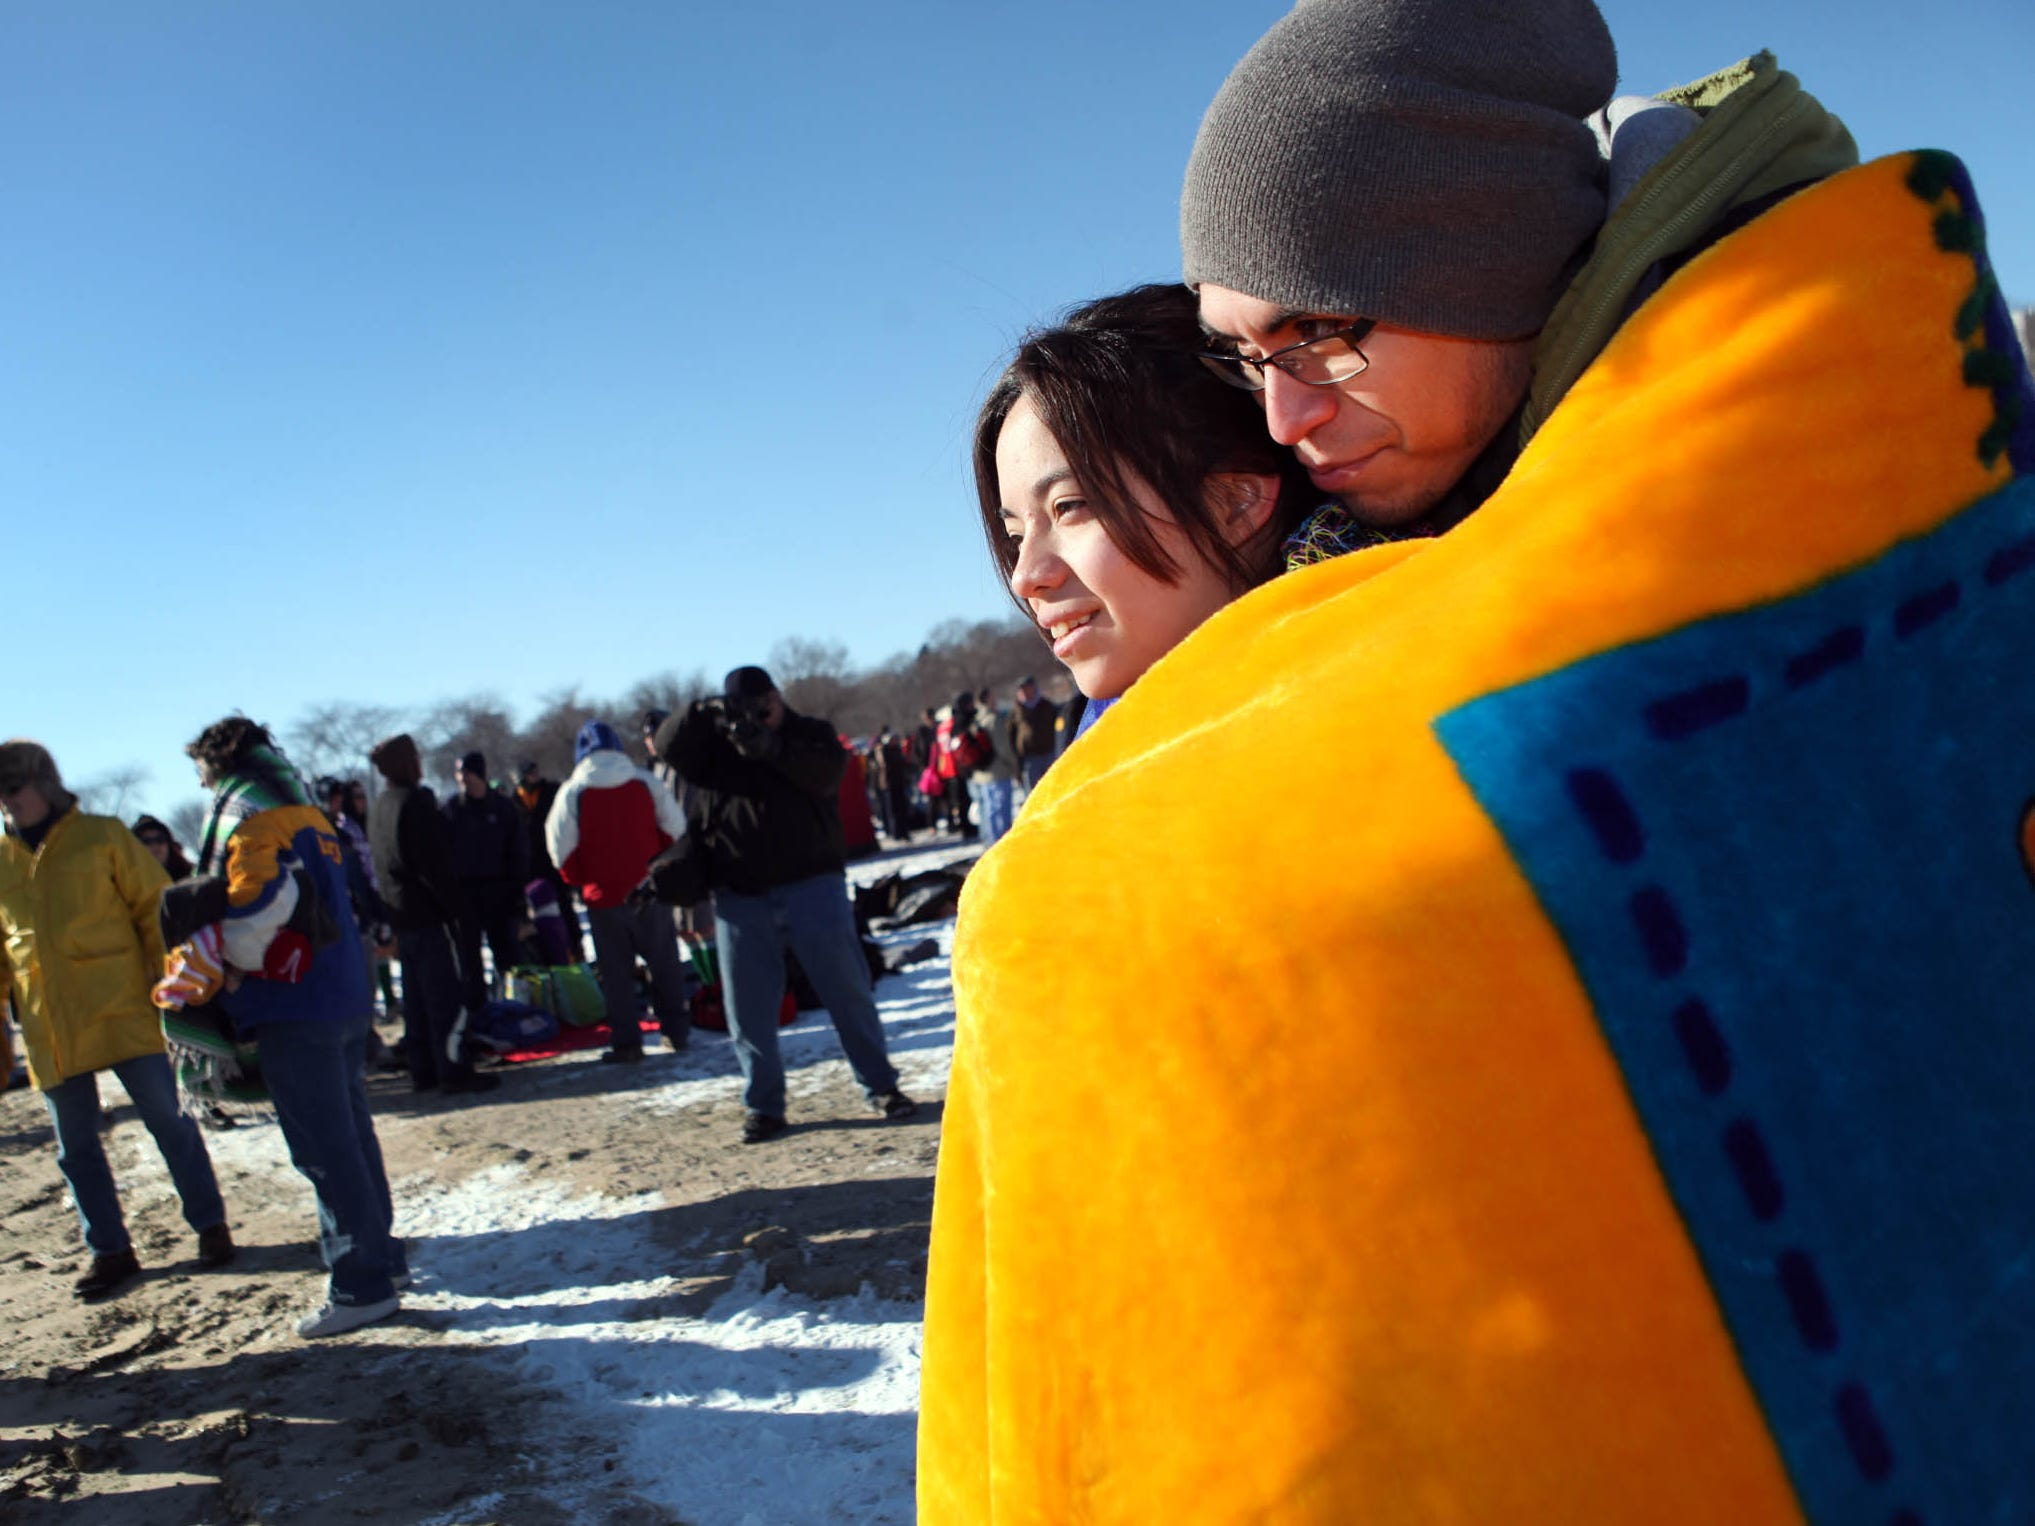 Isis Lozano of Milwaukee prepares for her first time participating in the Polar Bear Plunge at Milwaukee's Bradford Beach on Jan. 1, 2013, staying warm with the help of her boyfriend, Jesus Rodriguez of West Allis.